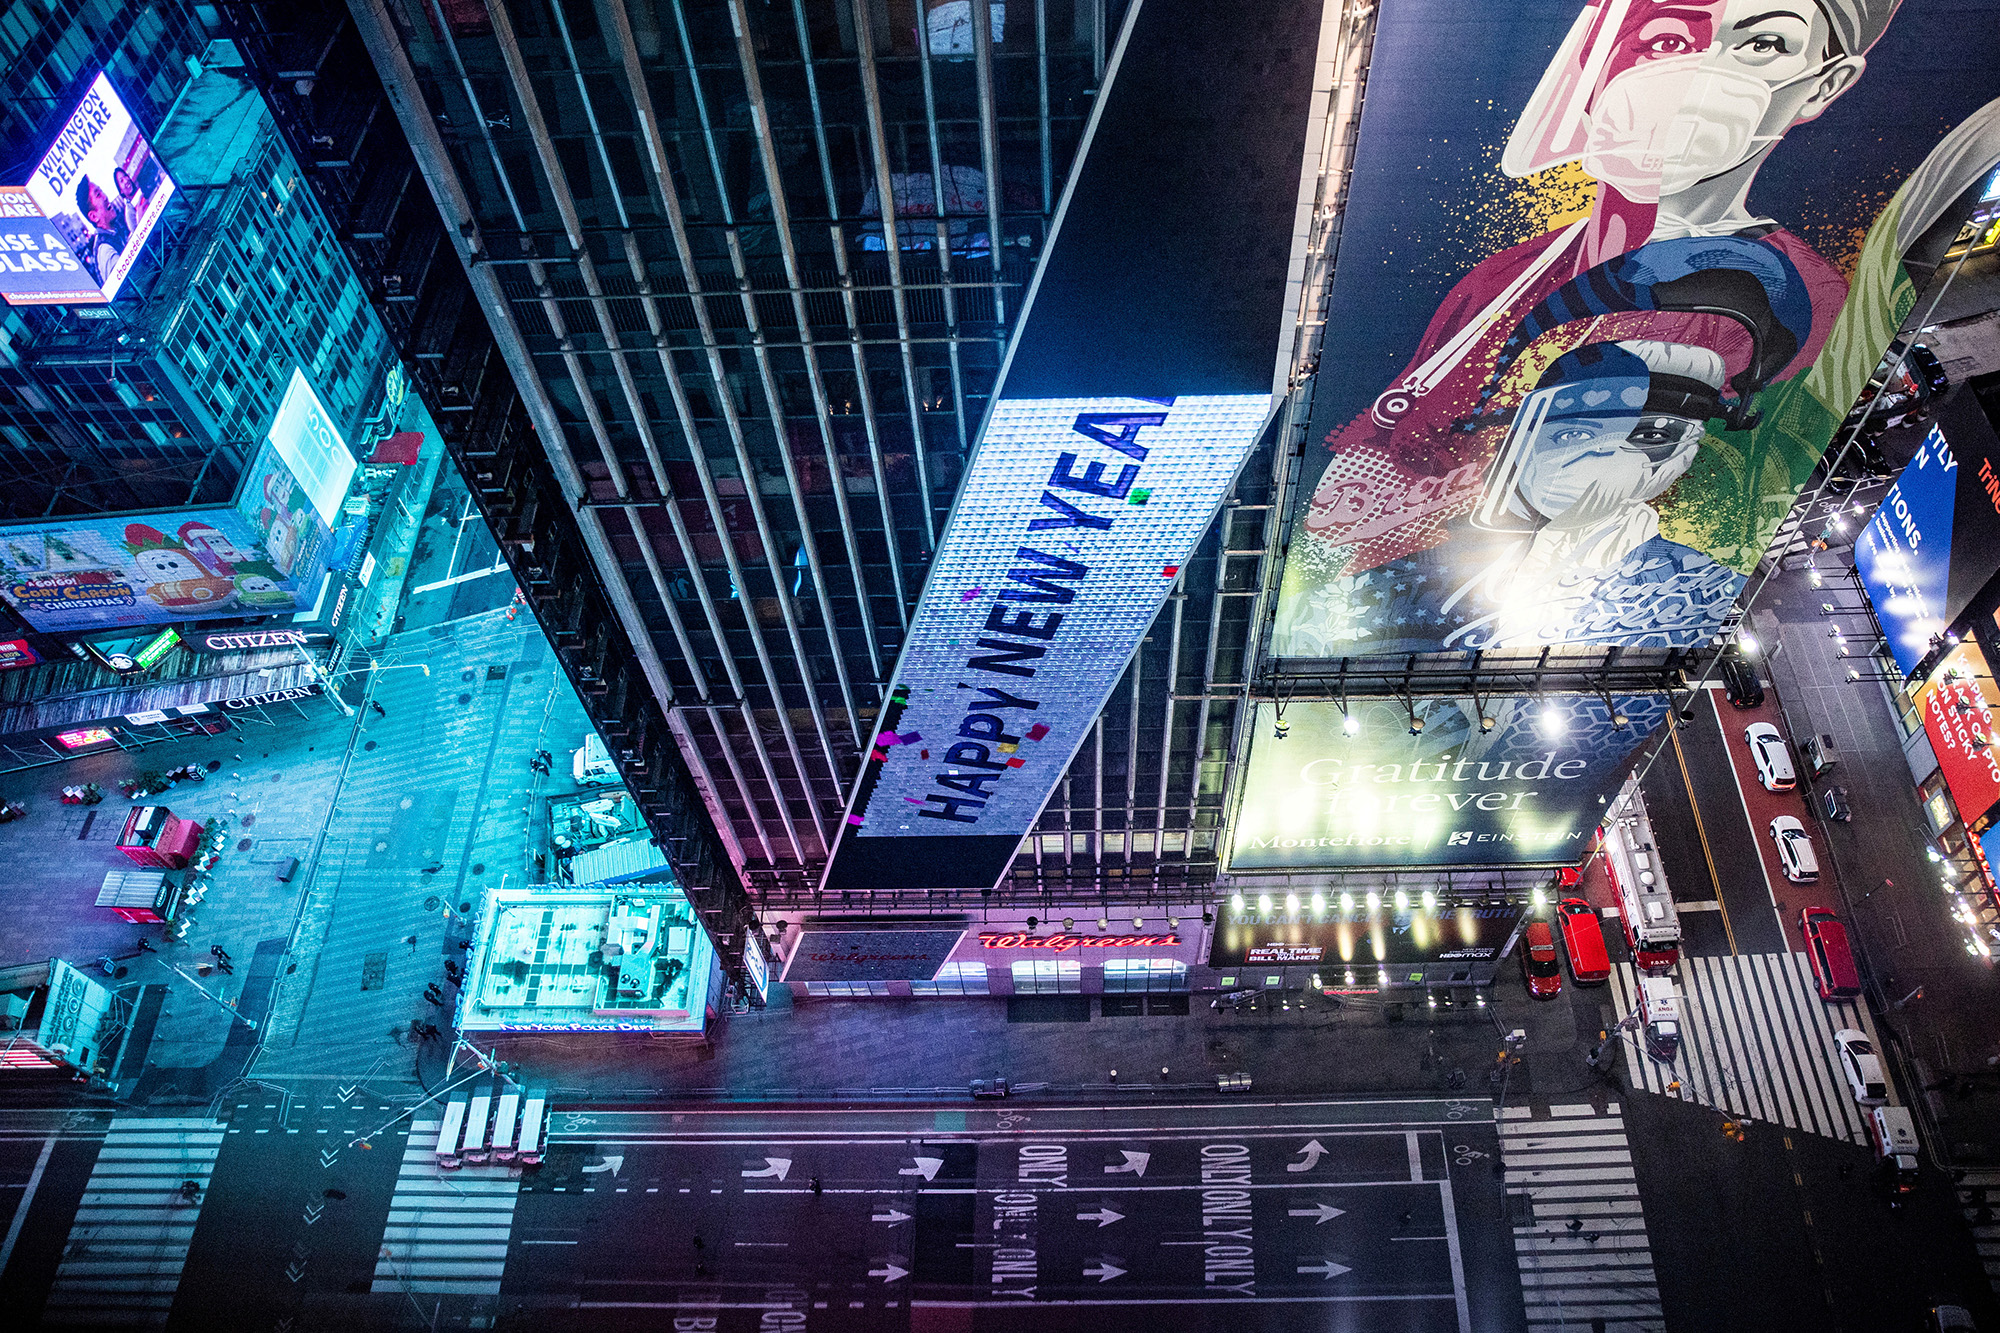 An empty street is seen in Times Square during the virtual New Year's Eve event following the outbreak of the coronavirus disease (COVID-19) in the Manhattan borough of New York City, New York, U.S., December 31, 2020. REUTERS/Jeenah Moon